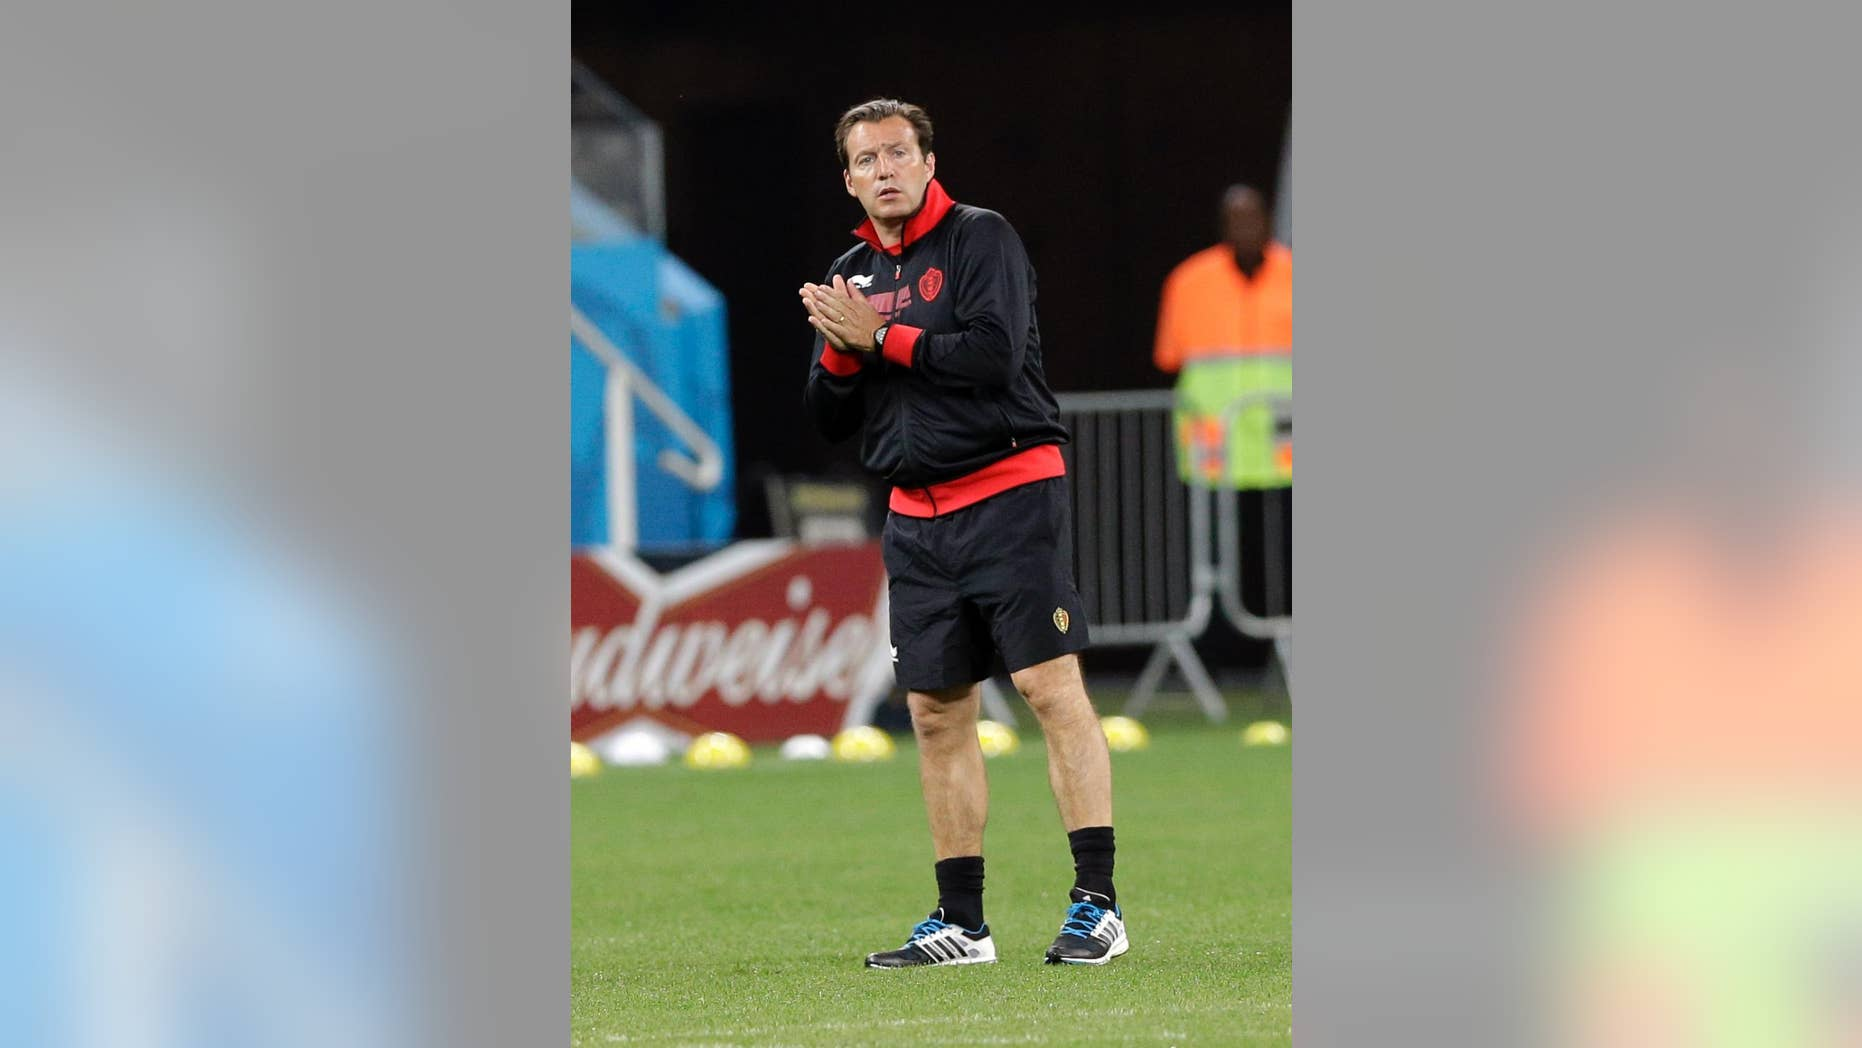 Belgium's head coach Marc Wilmots watches his players during an official training session the day before the group H World Cup soccer match between South Korea and Belgium at the Itaquerao Stadium in Sao Paulo, Brazil, Wednesday, June 25, 2014. (AP Photo/Lee Jin-man)